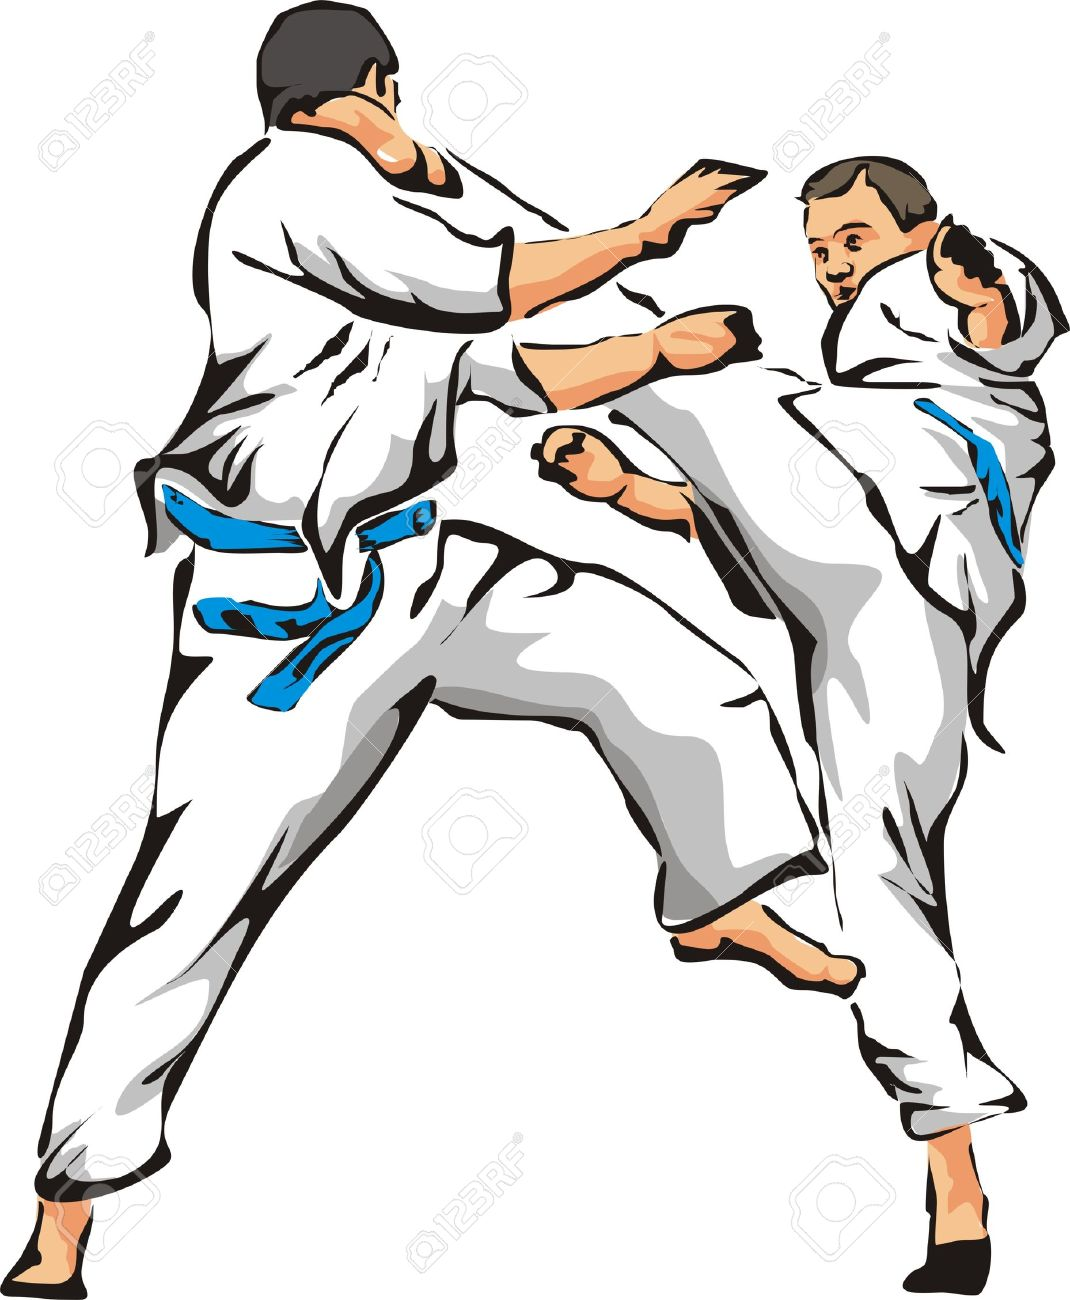 karate fight unarmed combat royalty free cliparts vectors and